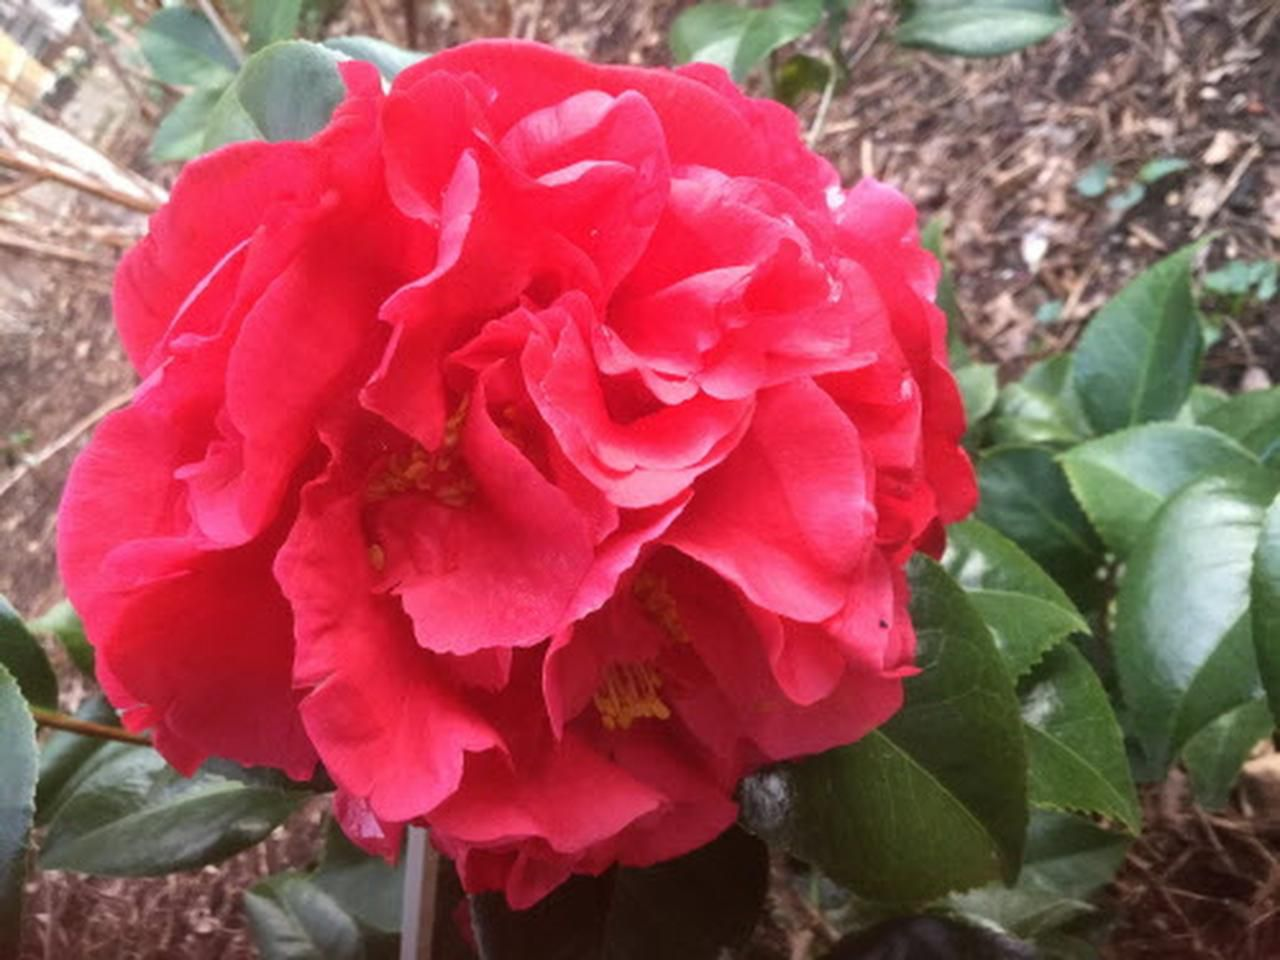 Camellia japonica 'Kramer's Supreme' is an old favorite in the Dallas garden. Its large, rose-red peony form is a highlight of the late-winter garden.